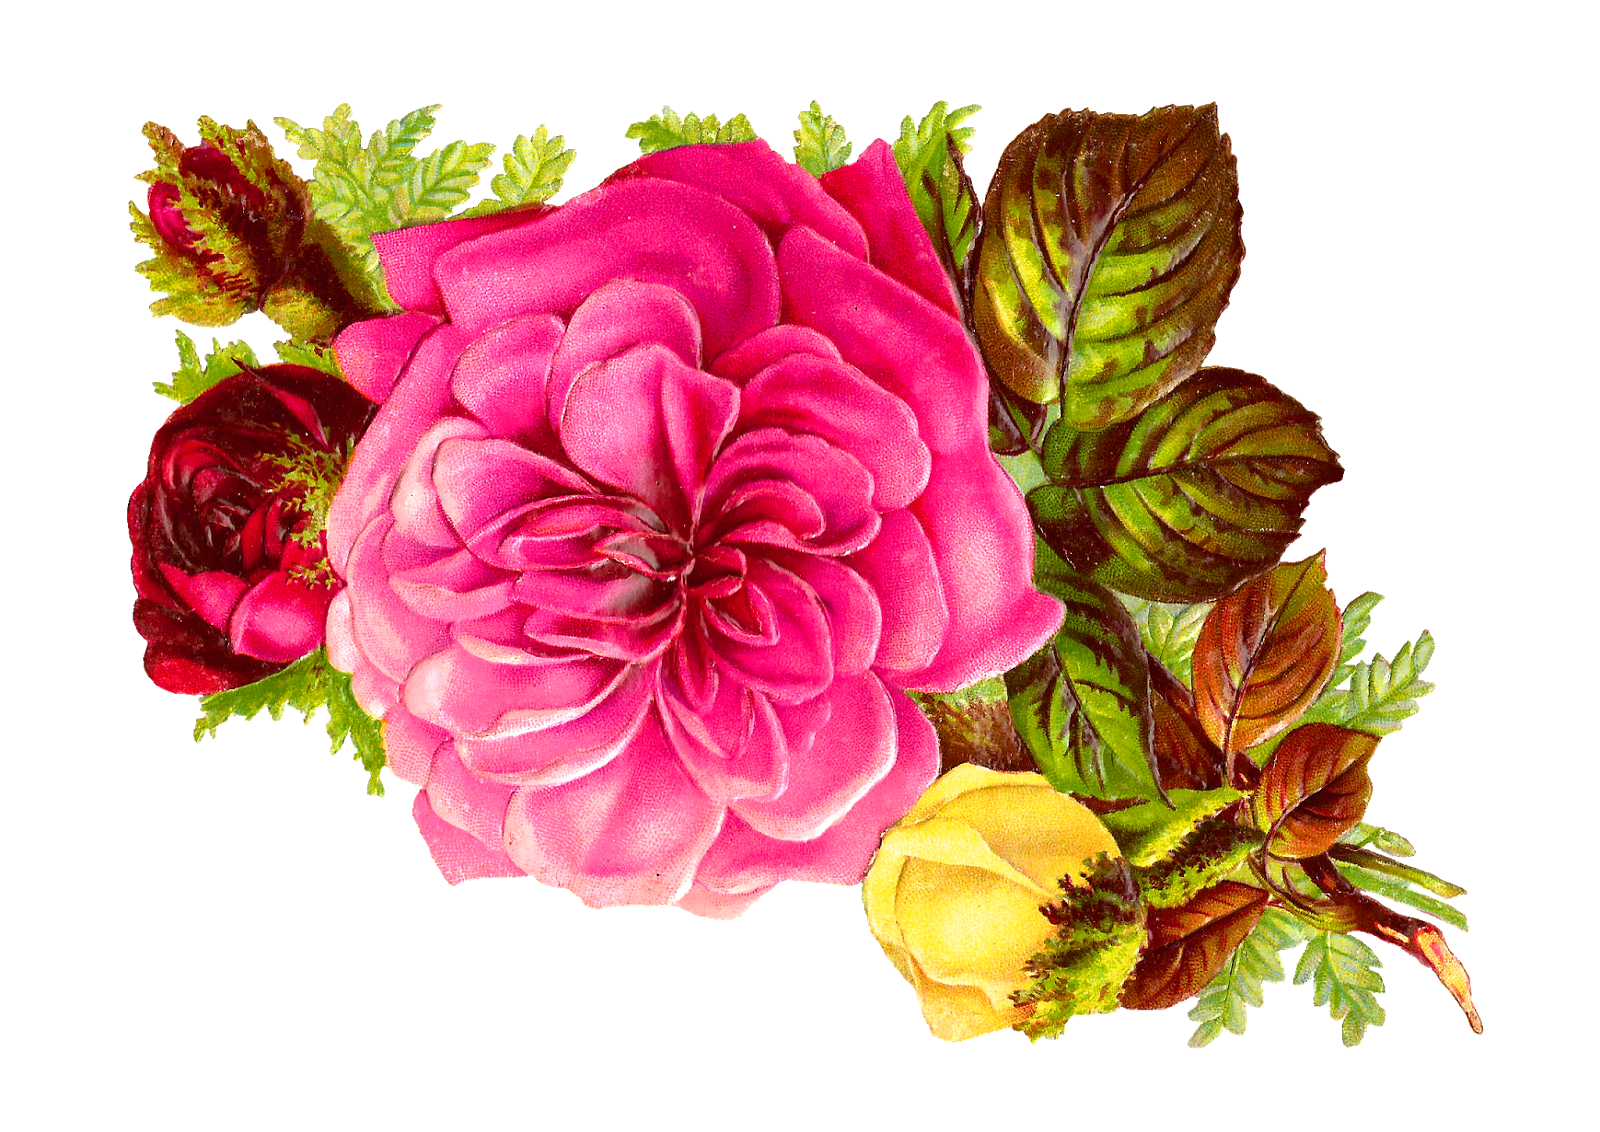 Flower bouquet clipart jpg free library habrumalas: Pink Flower Bouquet Clip Art Images jpg free library